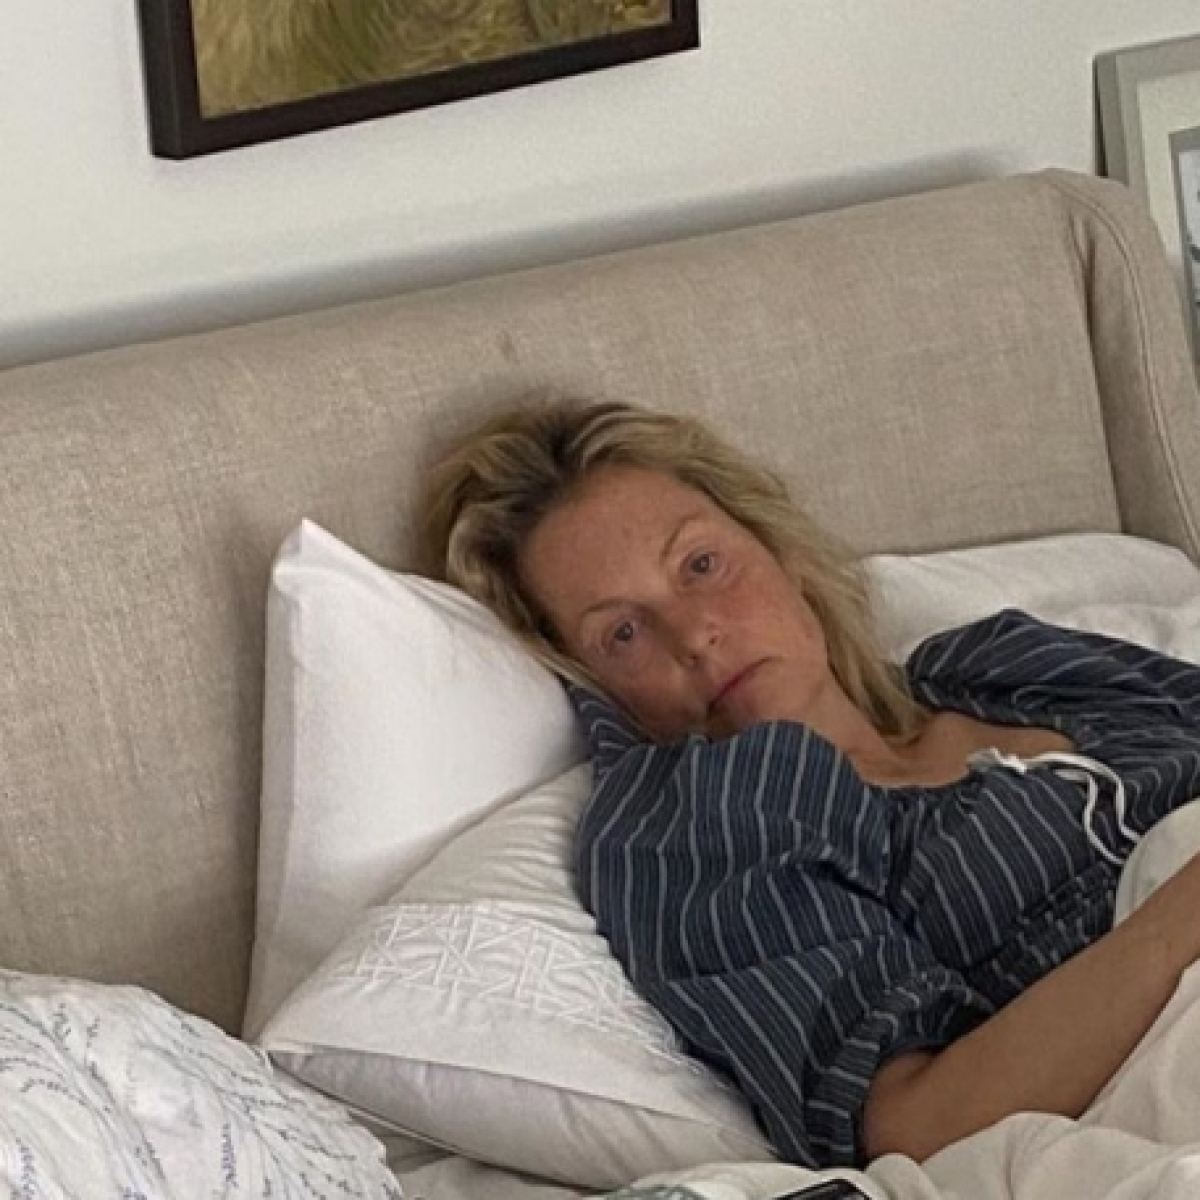 'This is pure misery': 'Nightcap' actress Ali Wentworth tests positive for coronavirus